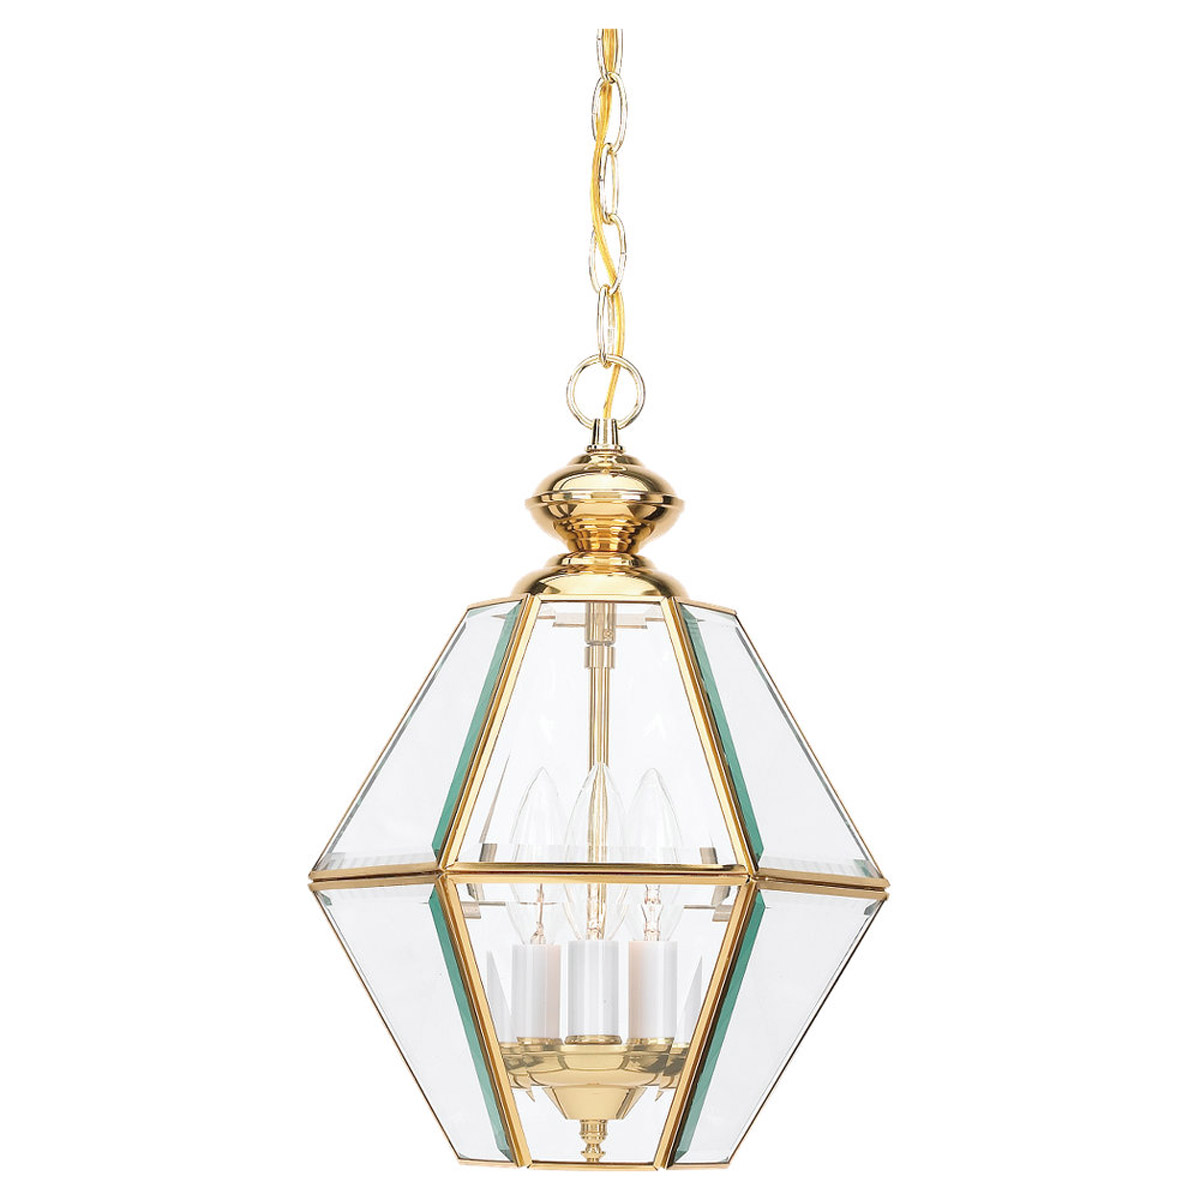 Sea Gull Lighting Grandover 3 Light Foyer Pendant in Polished Brass 5116-02 photo